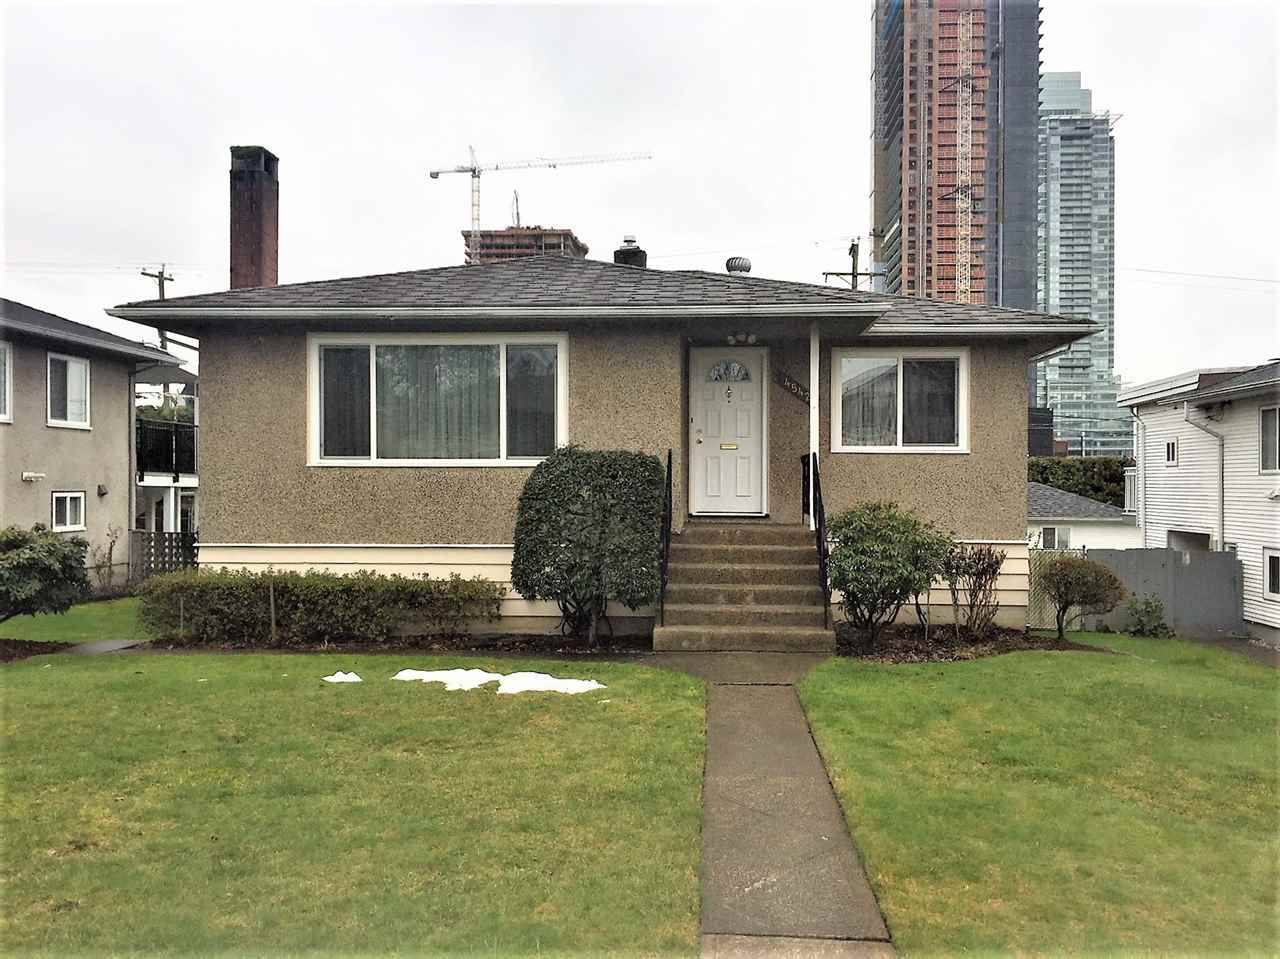 """Main Photo: 4542 BRENTLAWN Drive in Burnaby: Brentwood Park House for sale in """"BRENTWOOD"""" (Burnaby North)  : MLS®# R2249981"""